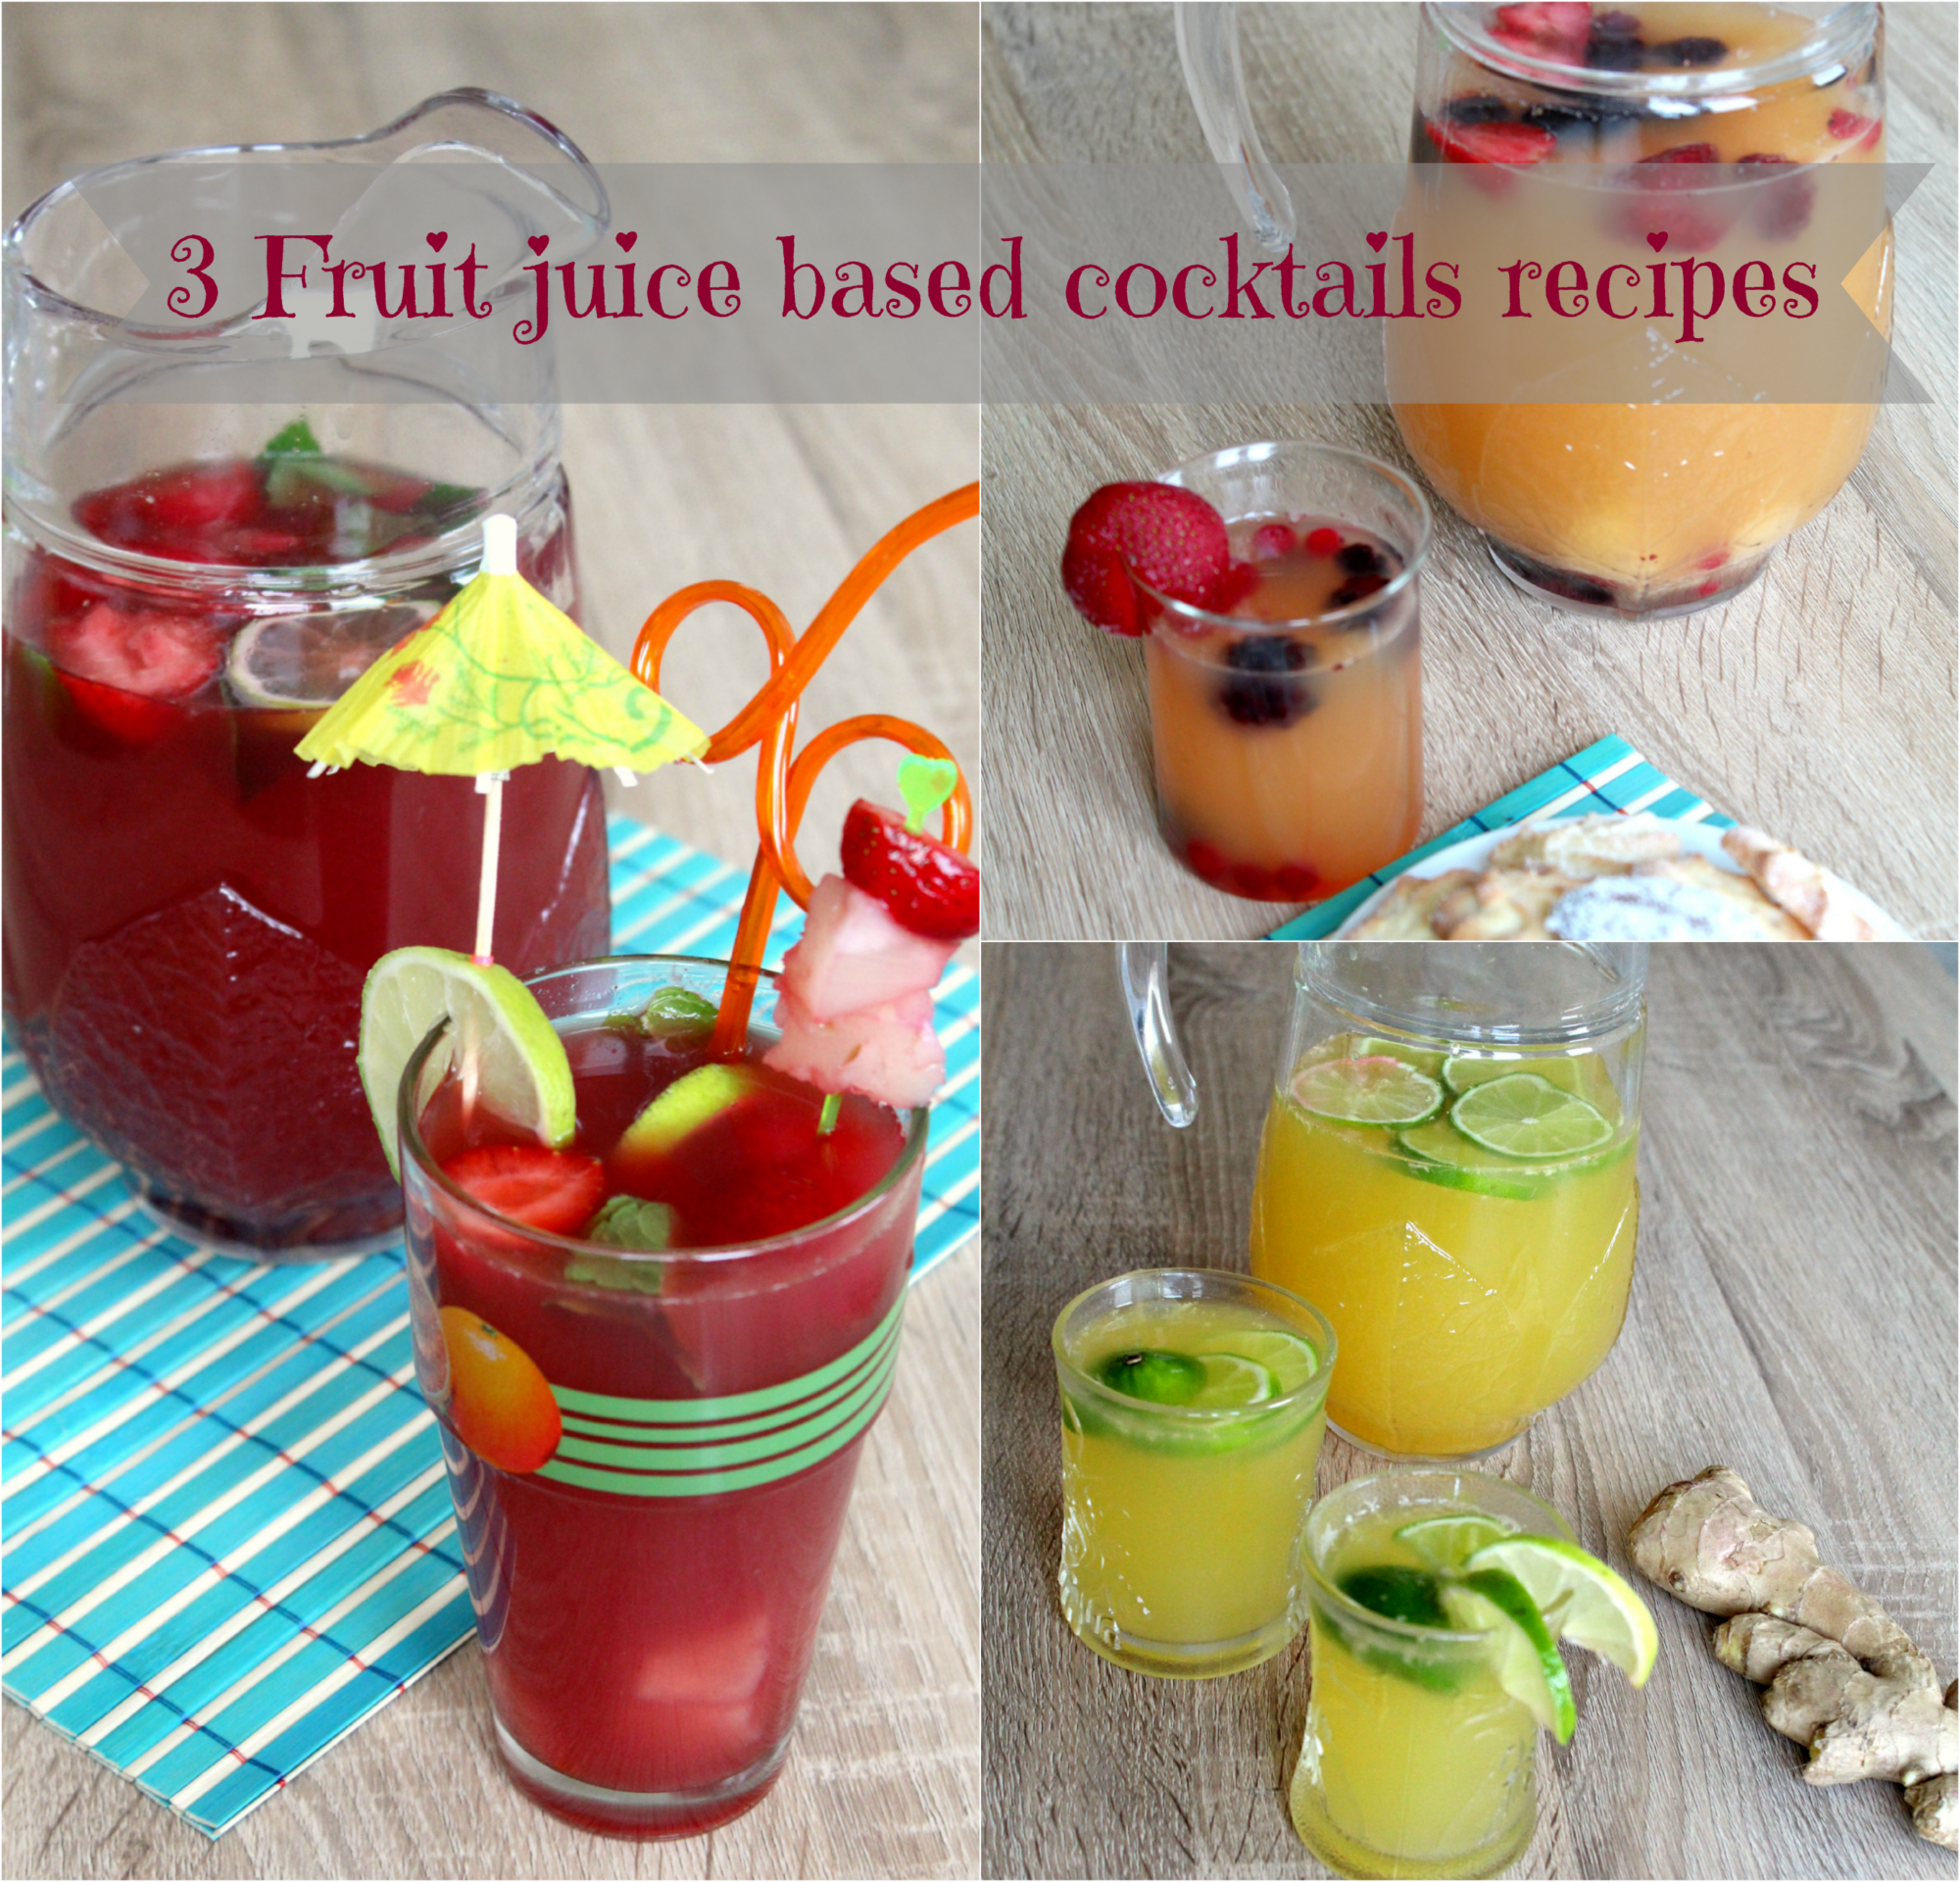 Fruit juice based cocktails